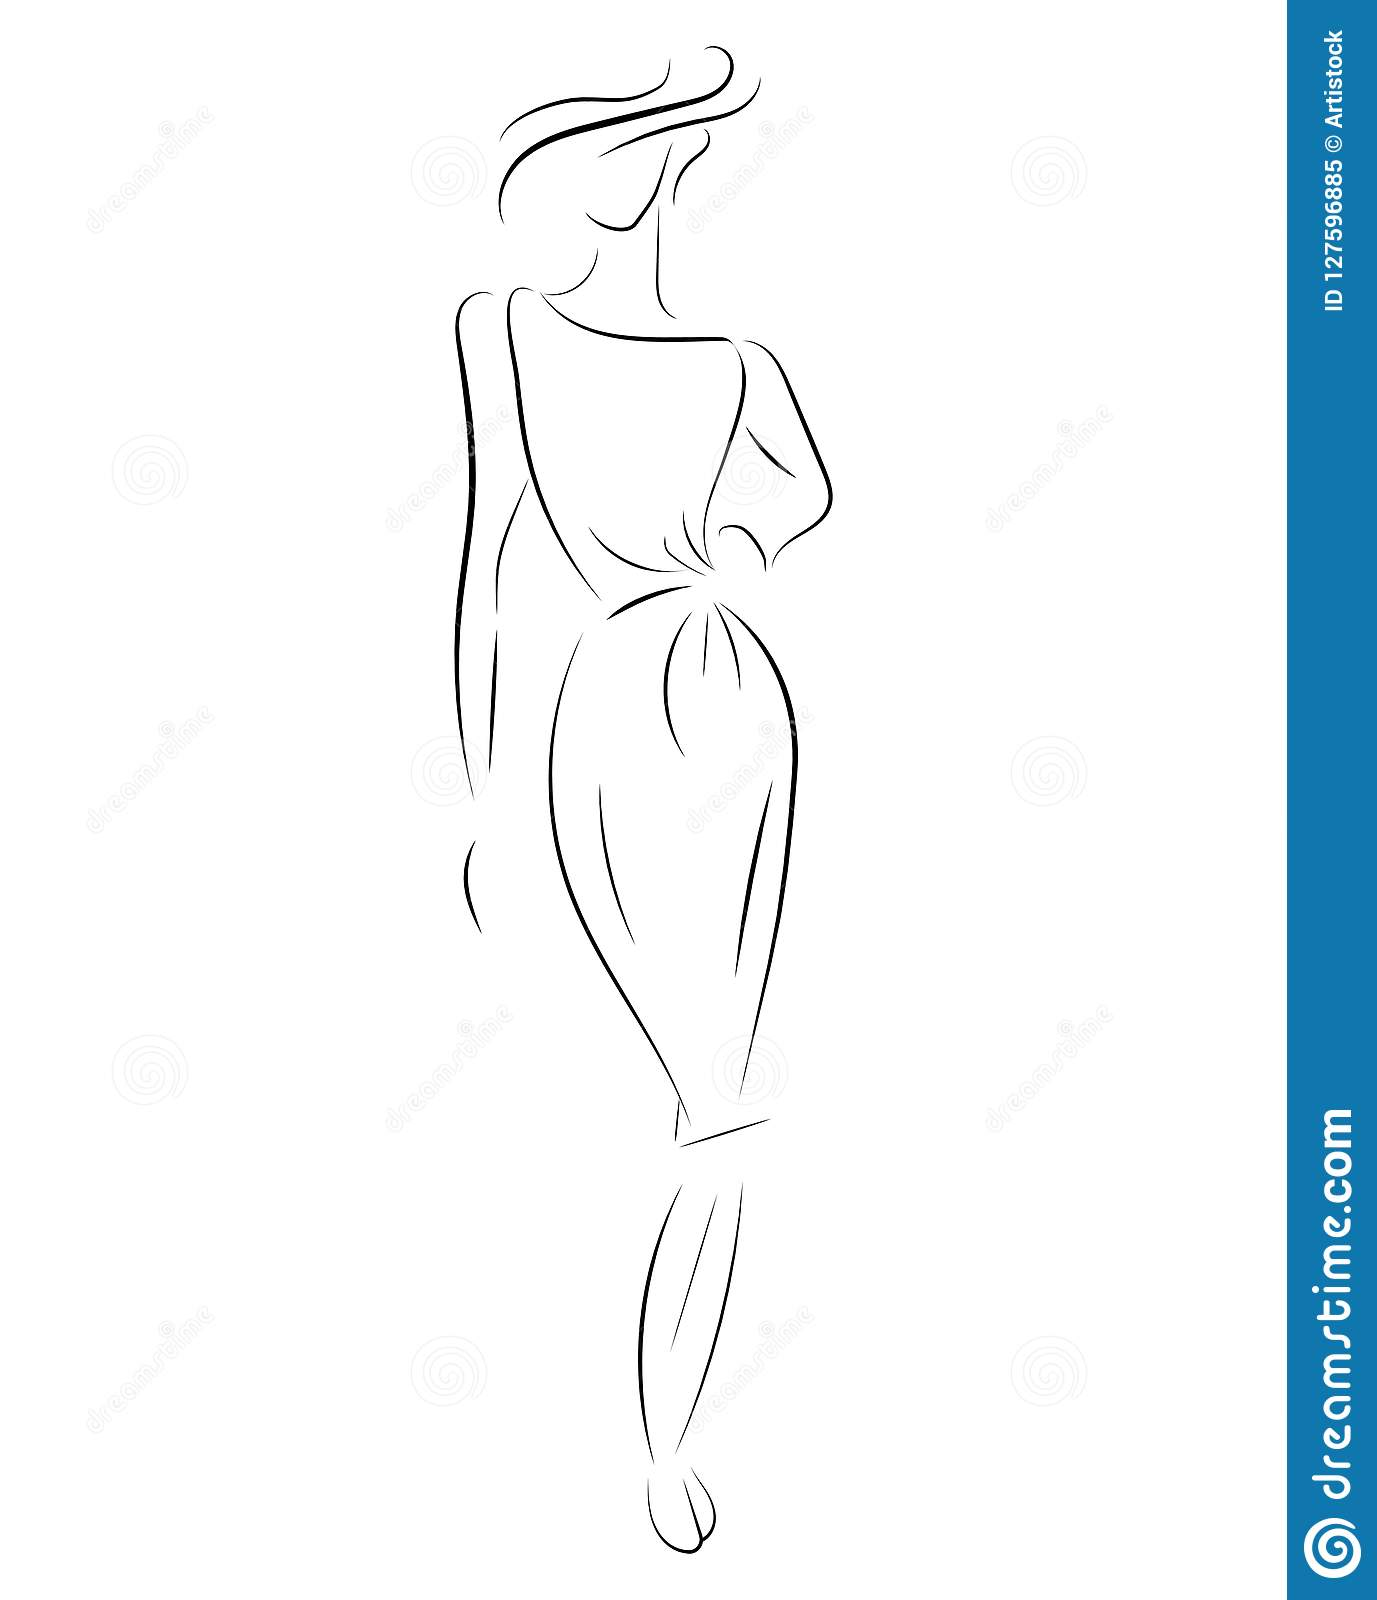 Girl in a dress linear outlines of a female figure in a dress silhouette of a model in clothes linear art of a slender woman